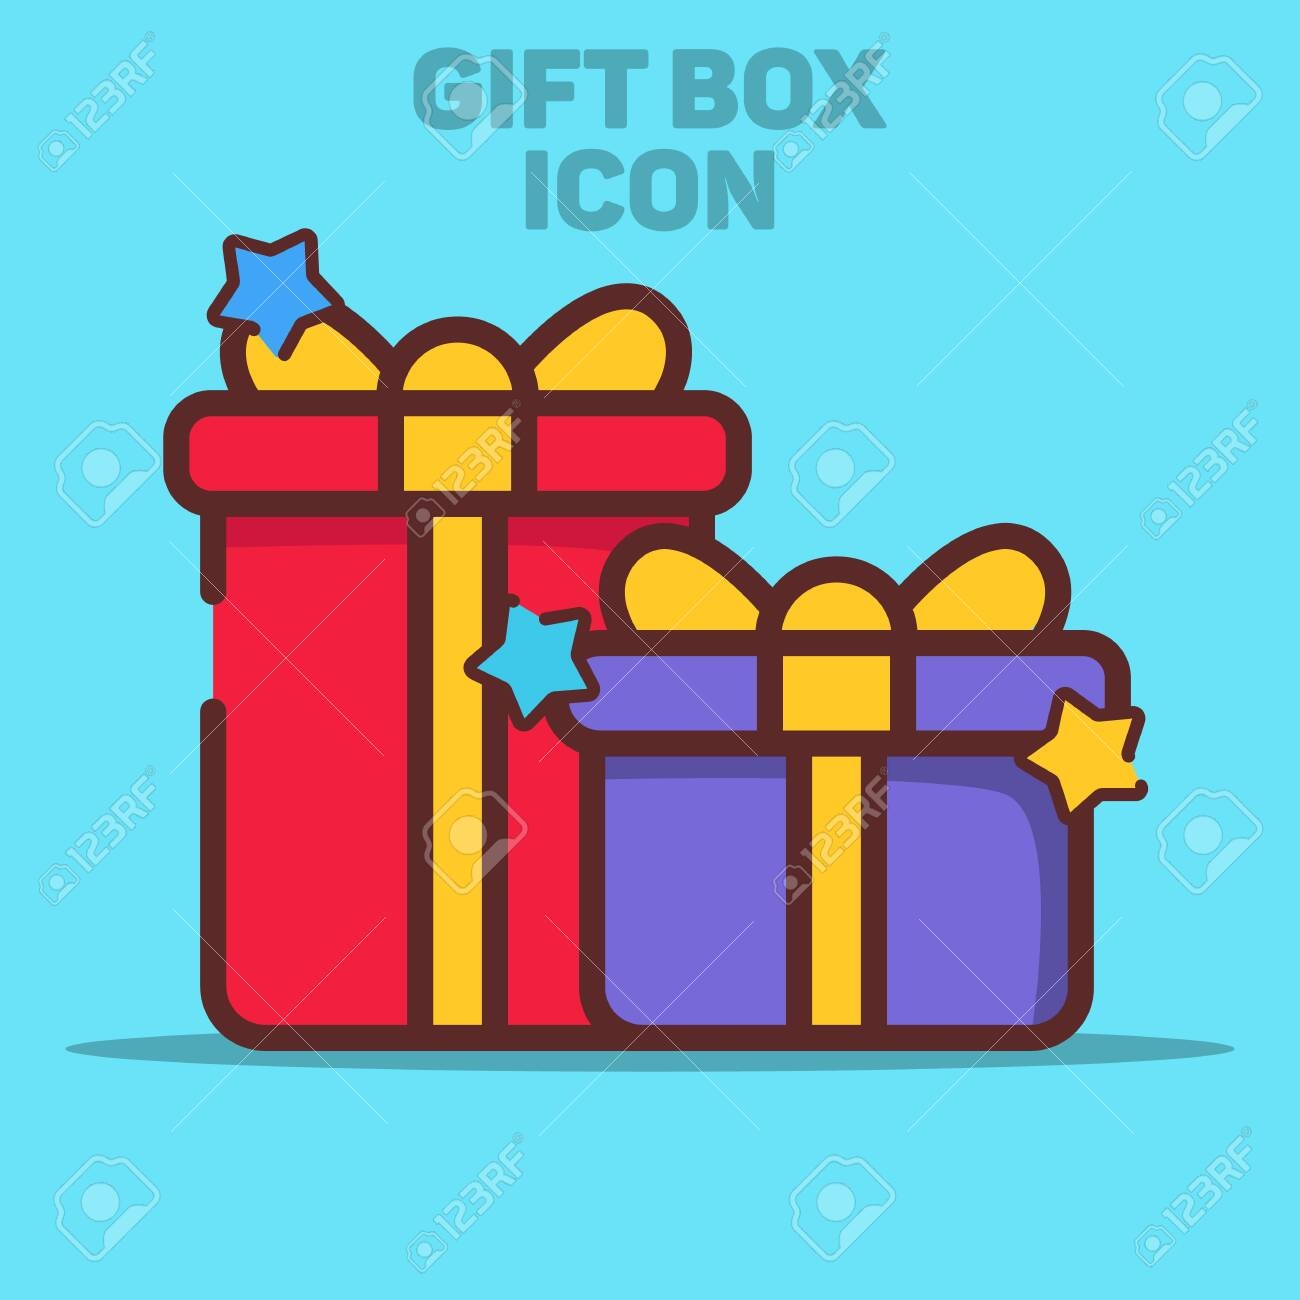 Isolated Gift Box Icon Vector Illustration with Blue Background - 132039250